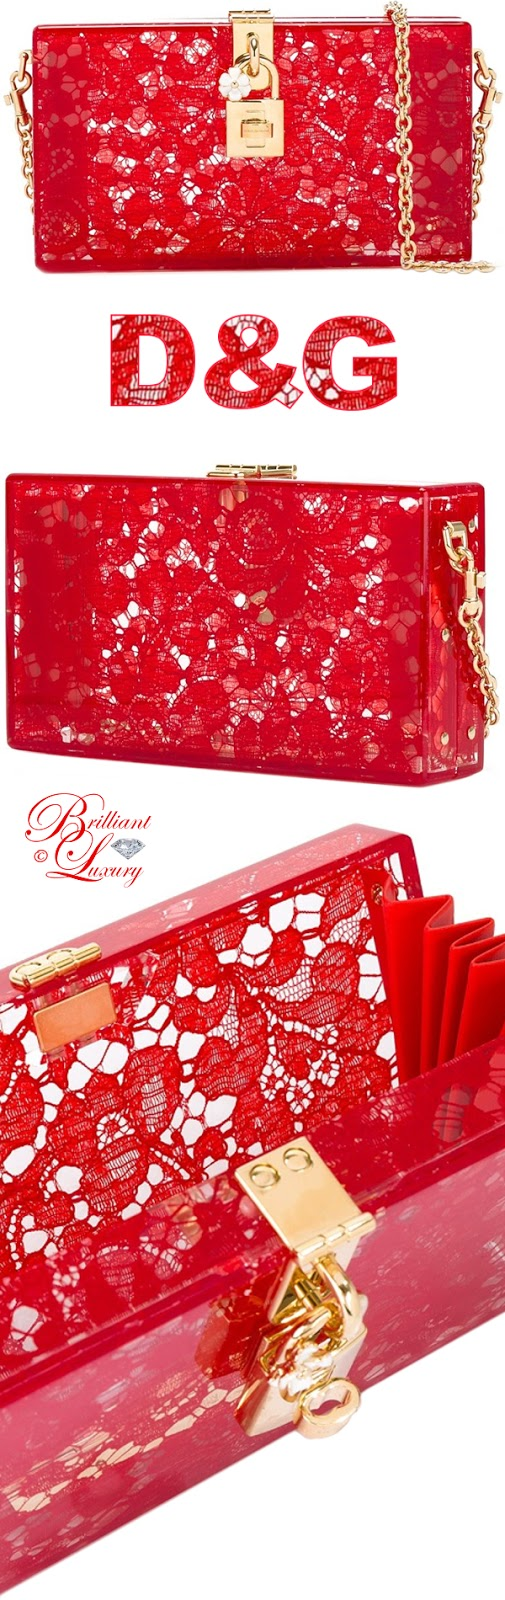 Brilliant Luxury ♦ Dolce & Gabbana Dolce Box Clutch